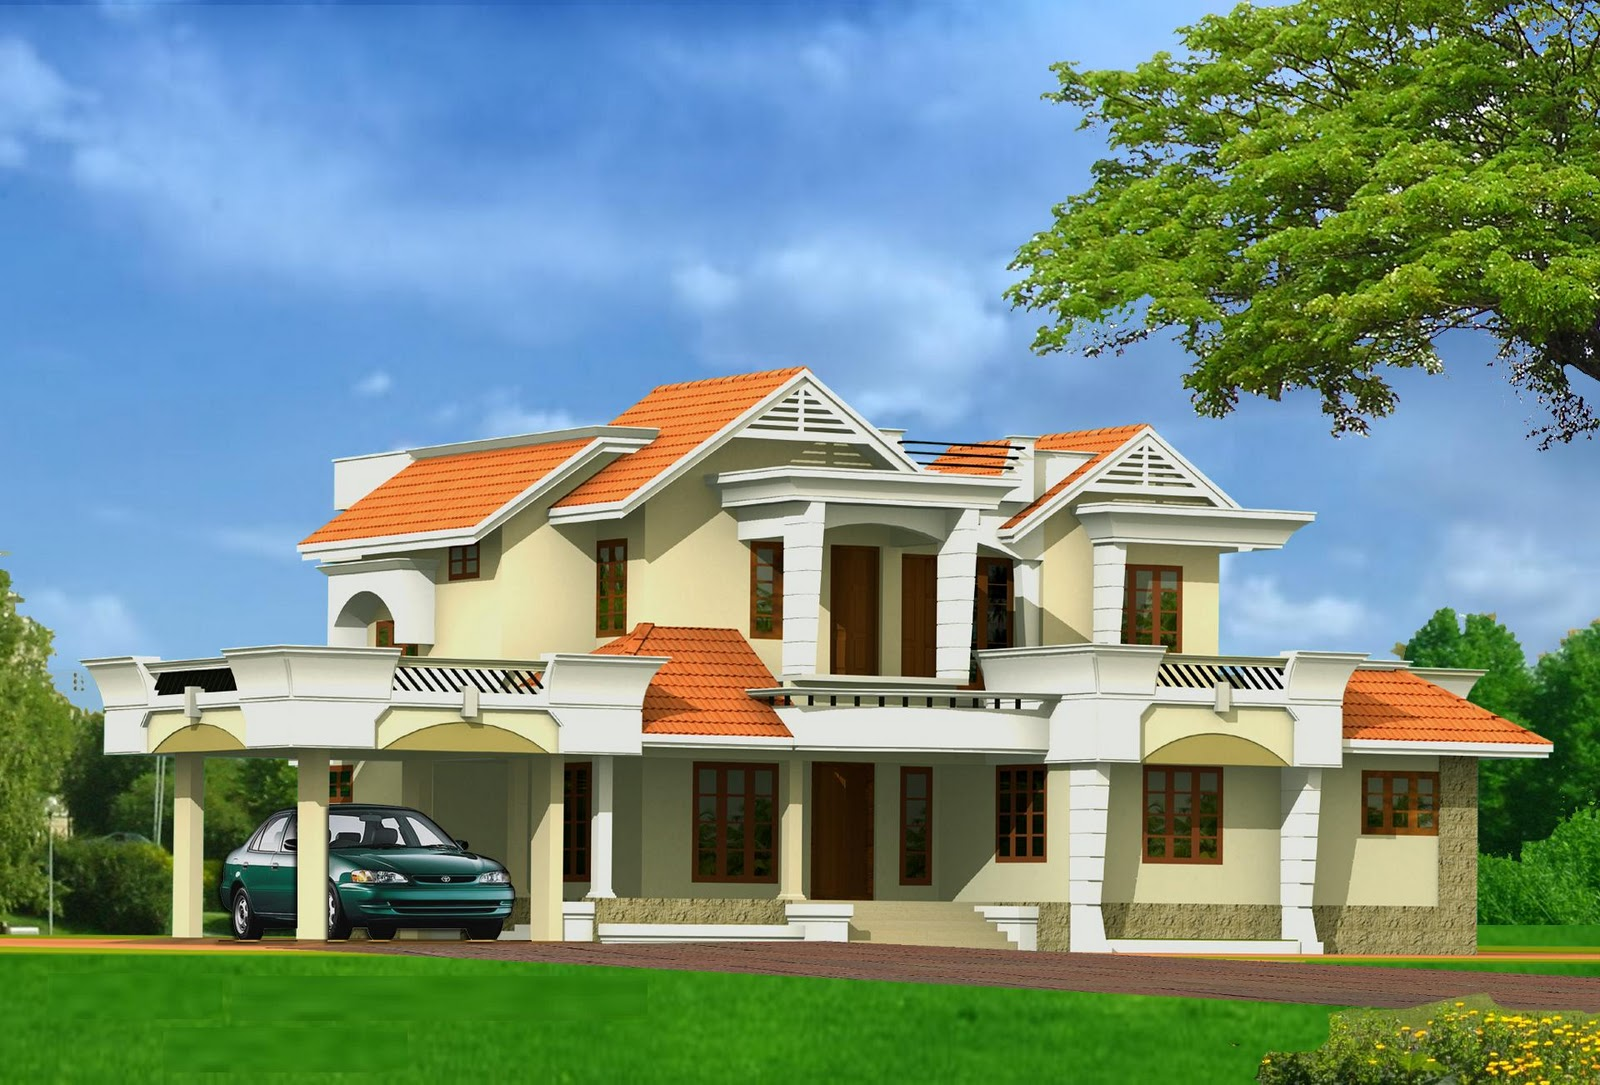 House plans and design architectural designs of for Residential house plans